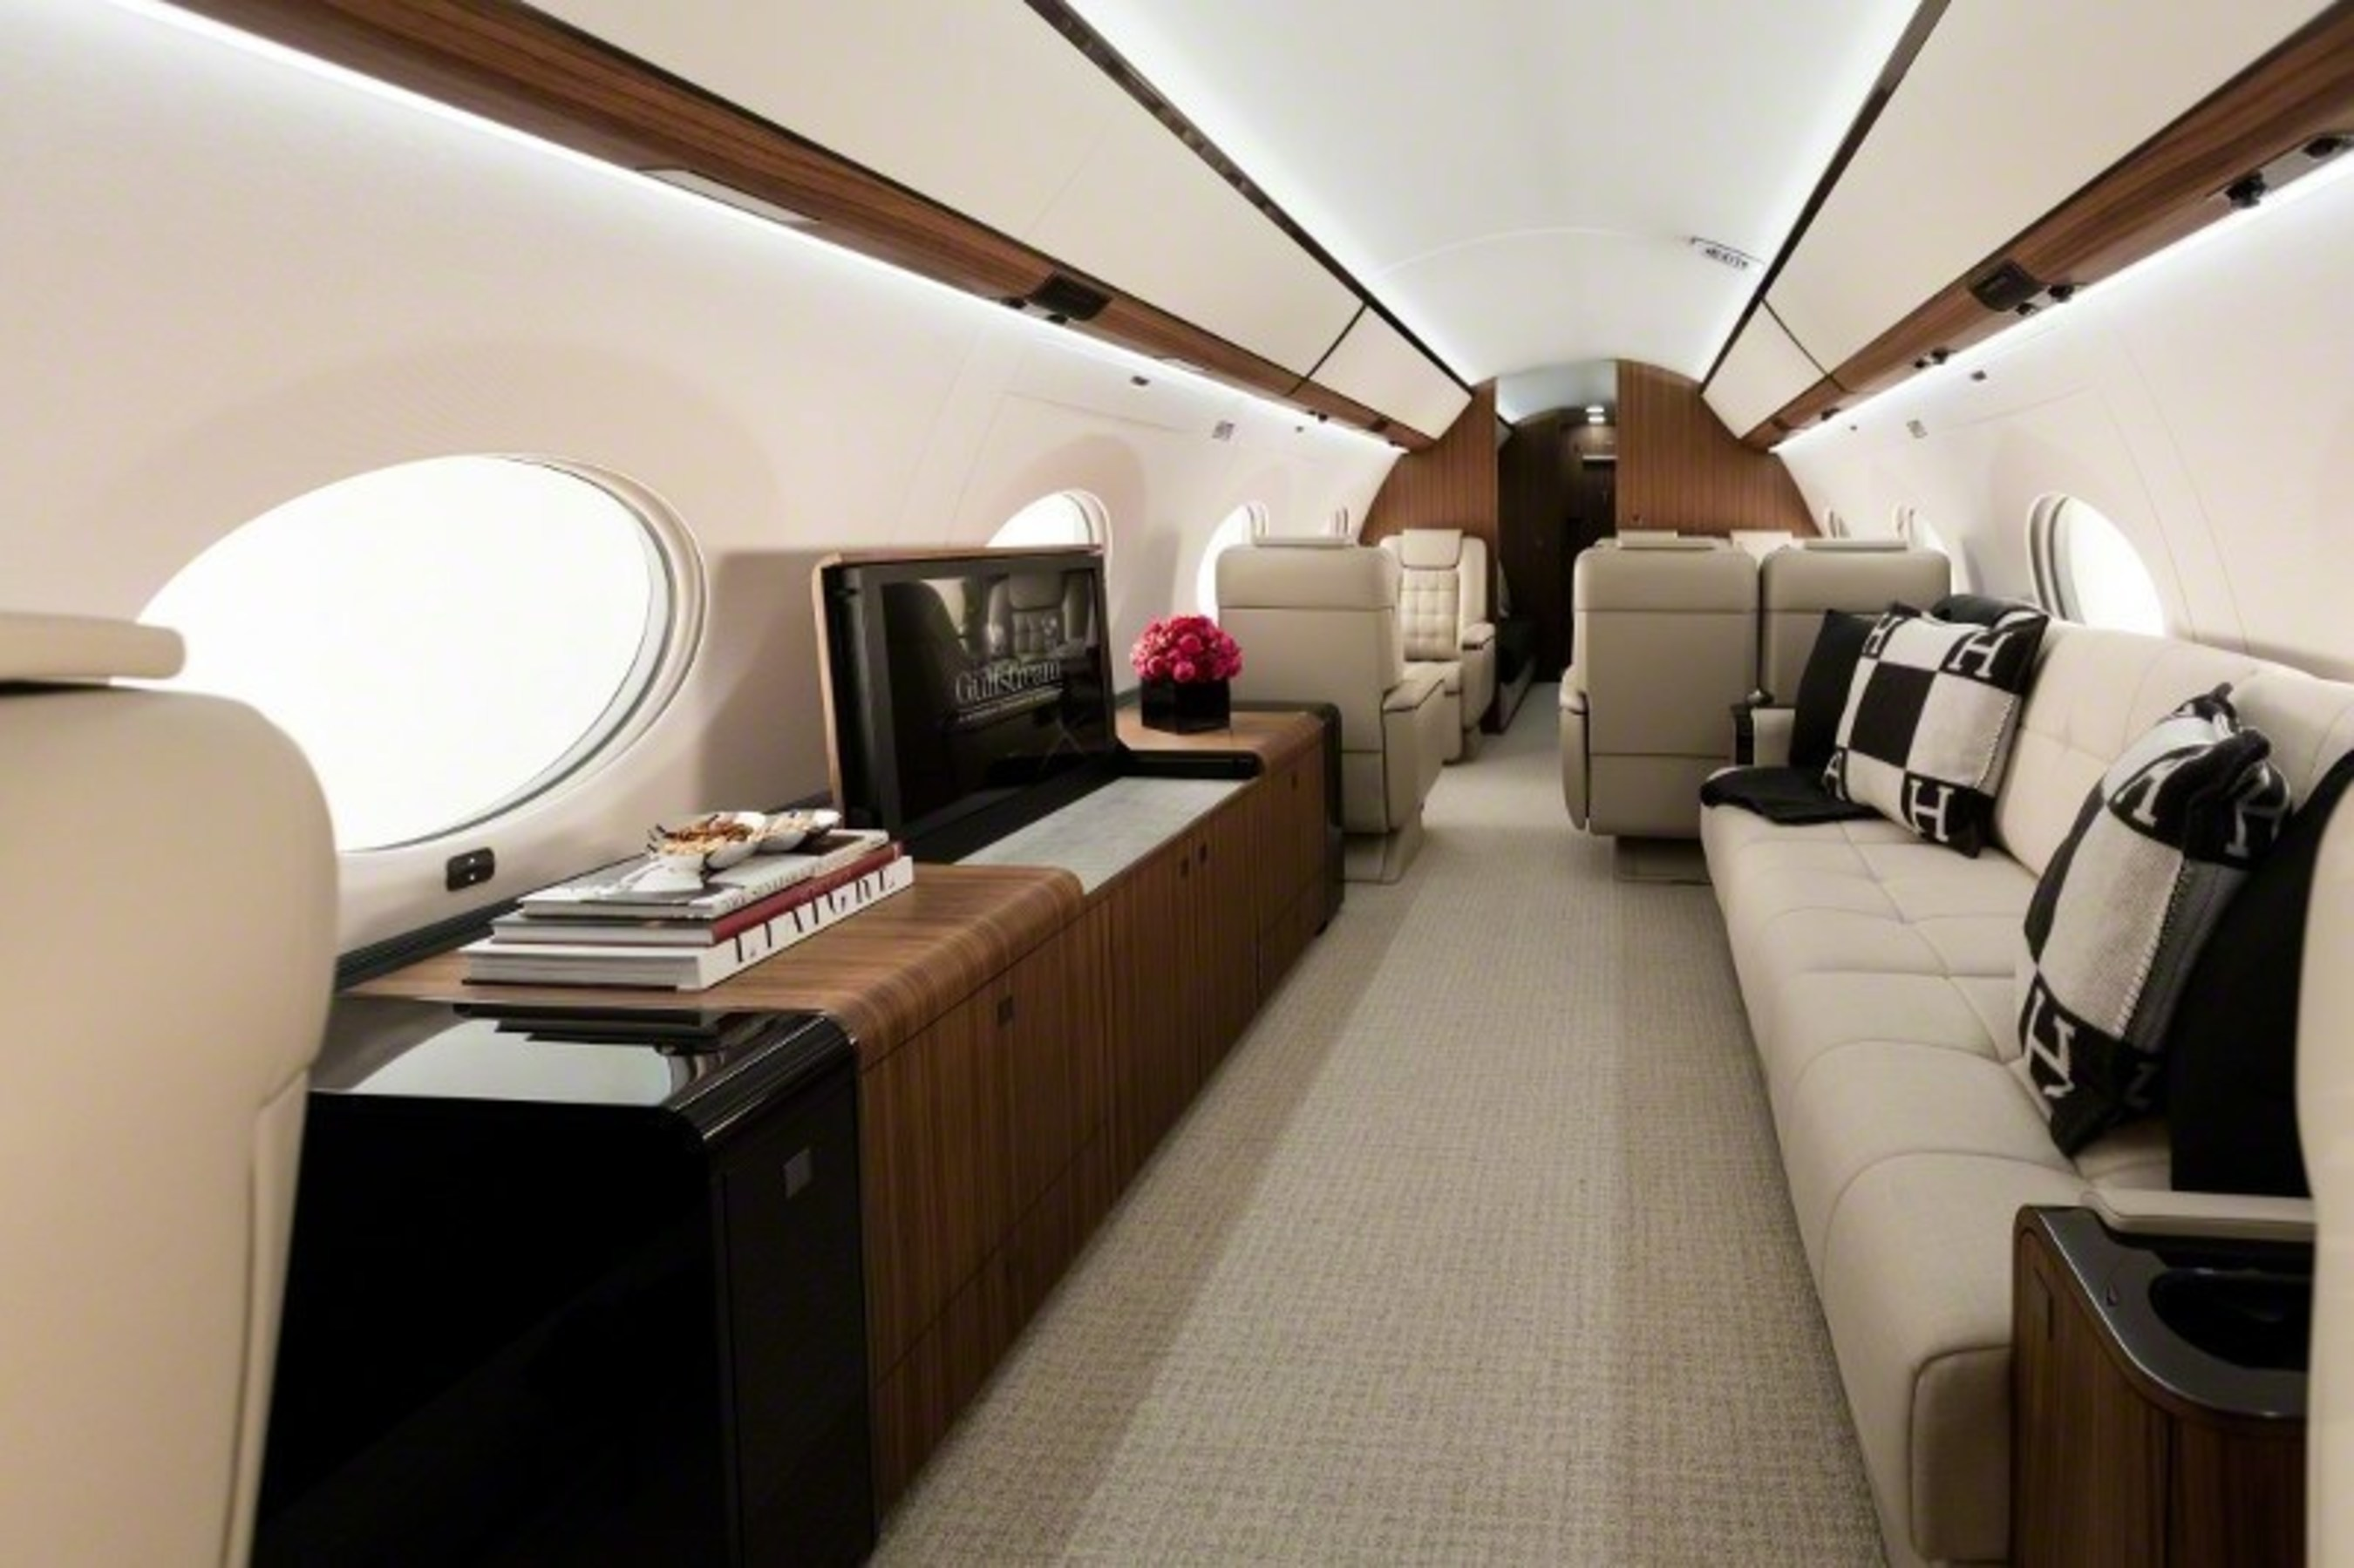 Gulfstream Aerospace Corp. is pleased to display three of its business jets at the Middle East and North Africa Business Aviation Association (MEBAA) Show Dec. 6-8 in Dubai. The static display will include the company flagship Gulfstream G650ER as well as the high-performing Gulfstream G550 and the class-leading Gulfstream G280. The four-living-area G650ER will headline Gulfstream's presence, showcasing the company's commitment to exceeding customers' expectations for customization, comfort and craftsmanship.